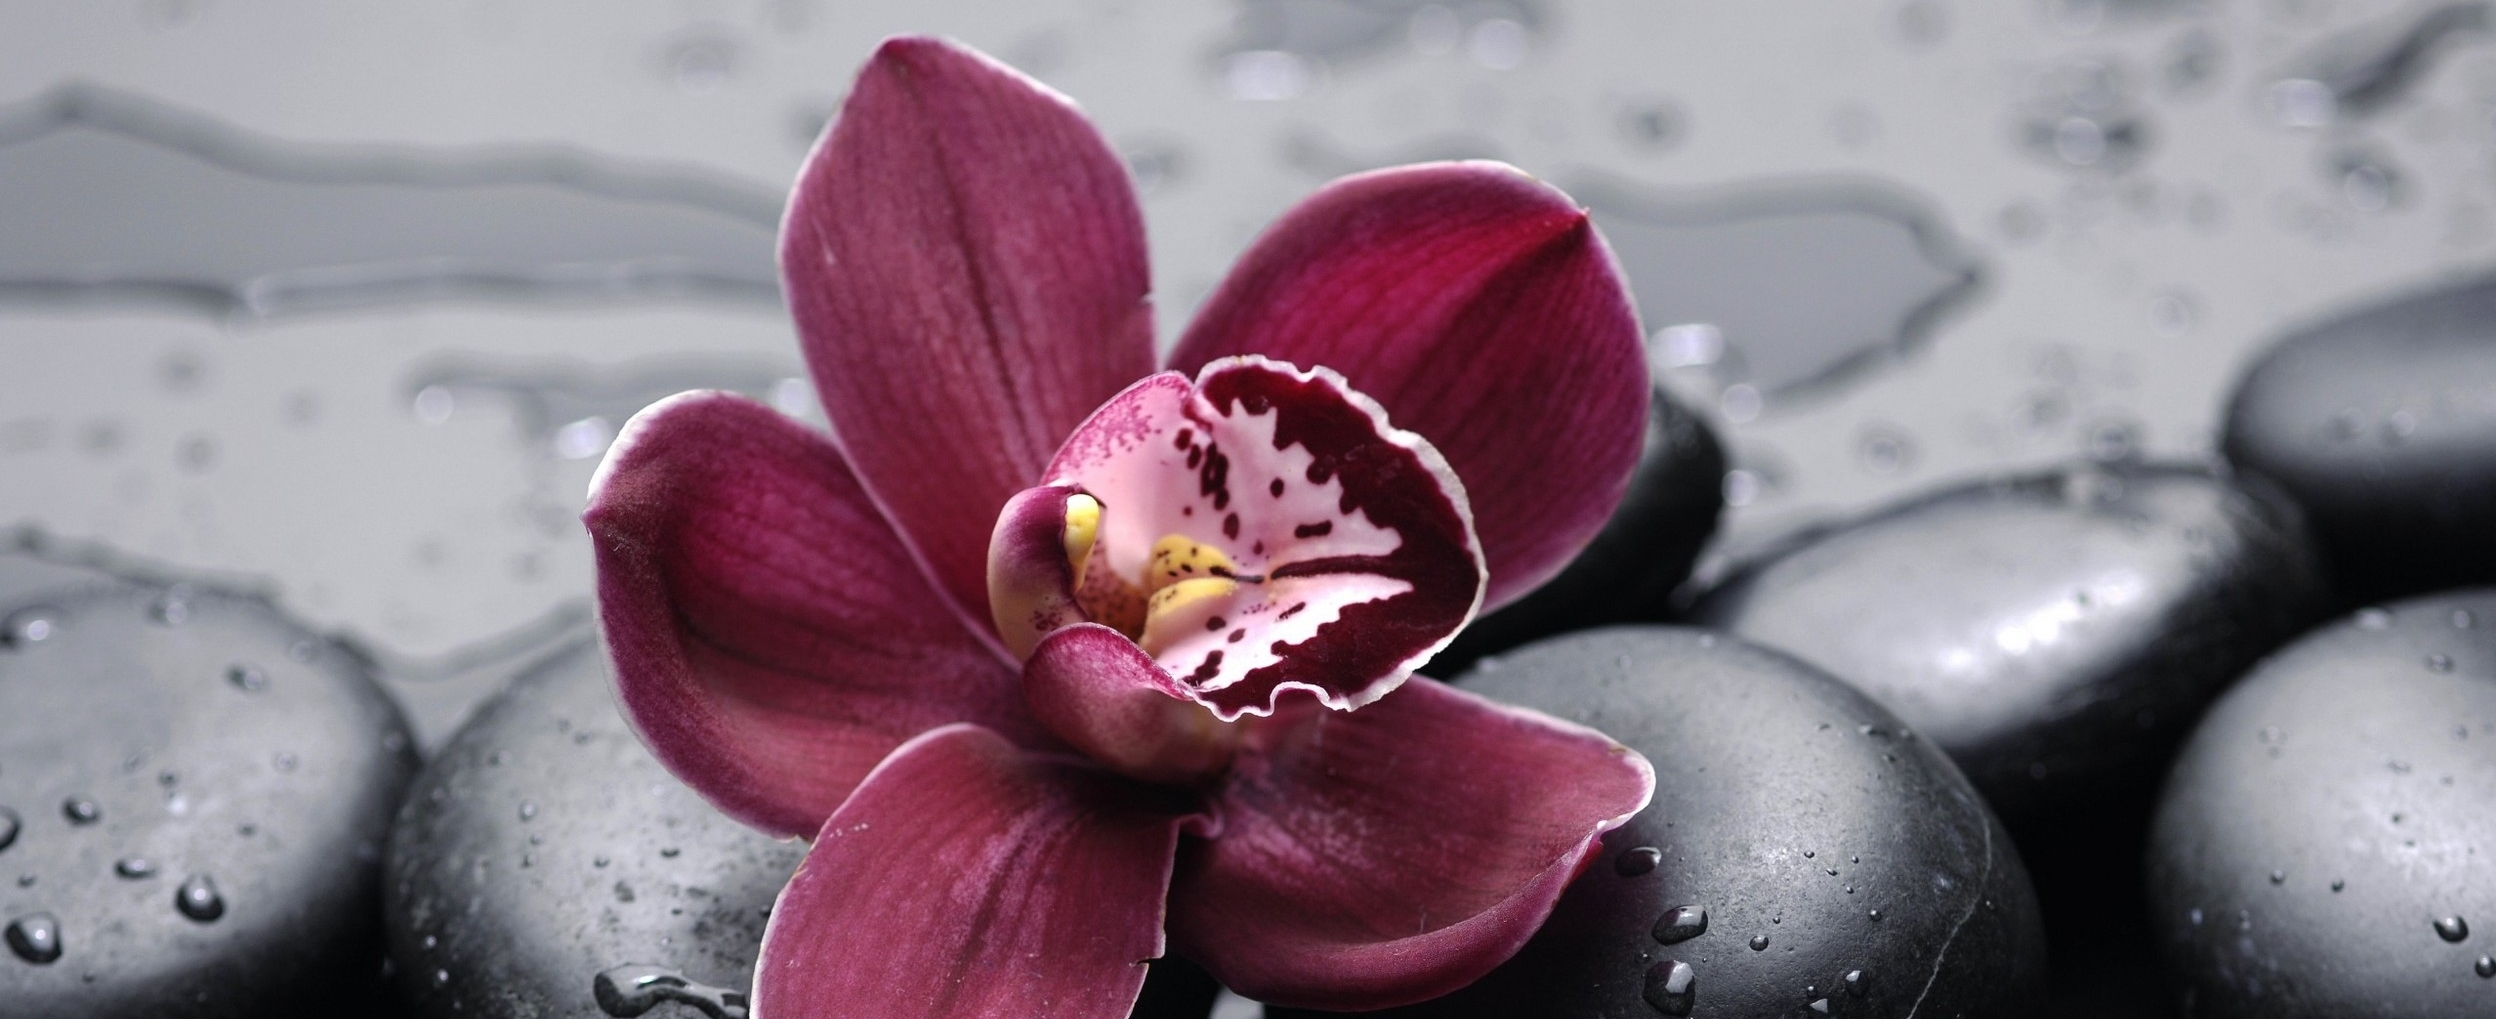 6851717-orchid-wallpaper.jpg